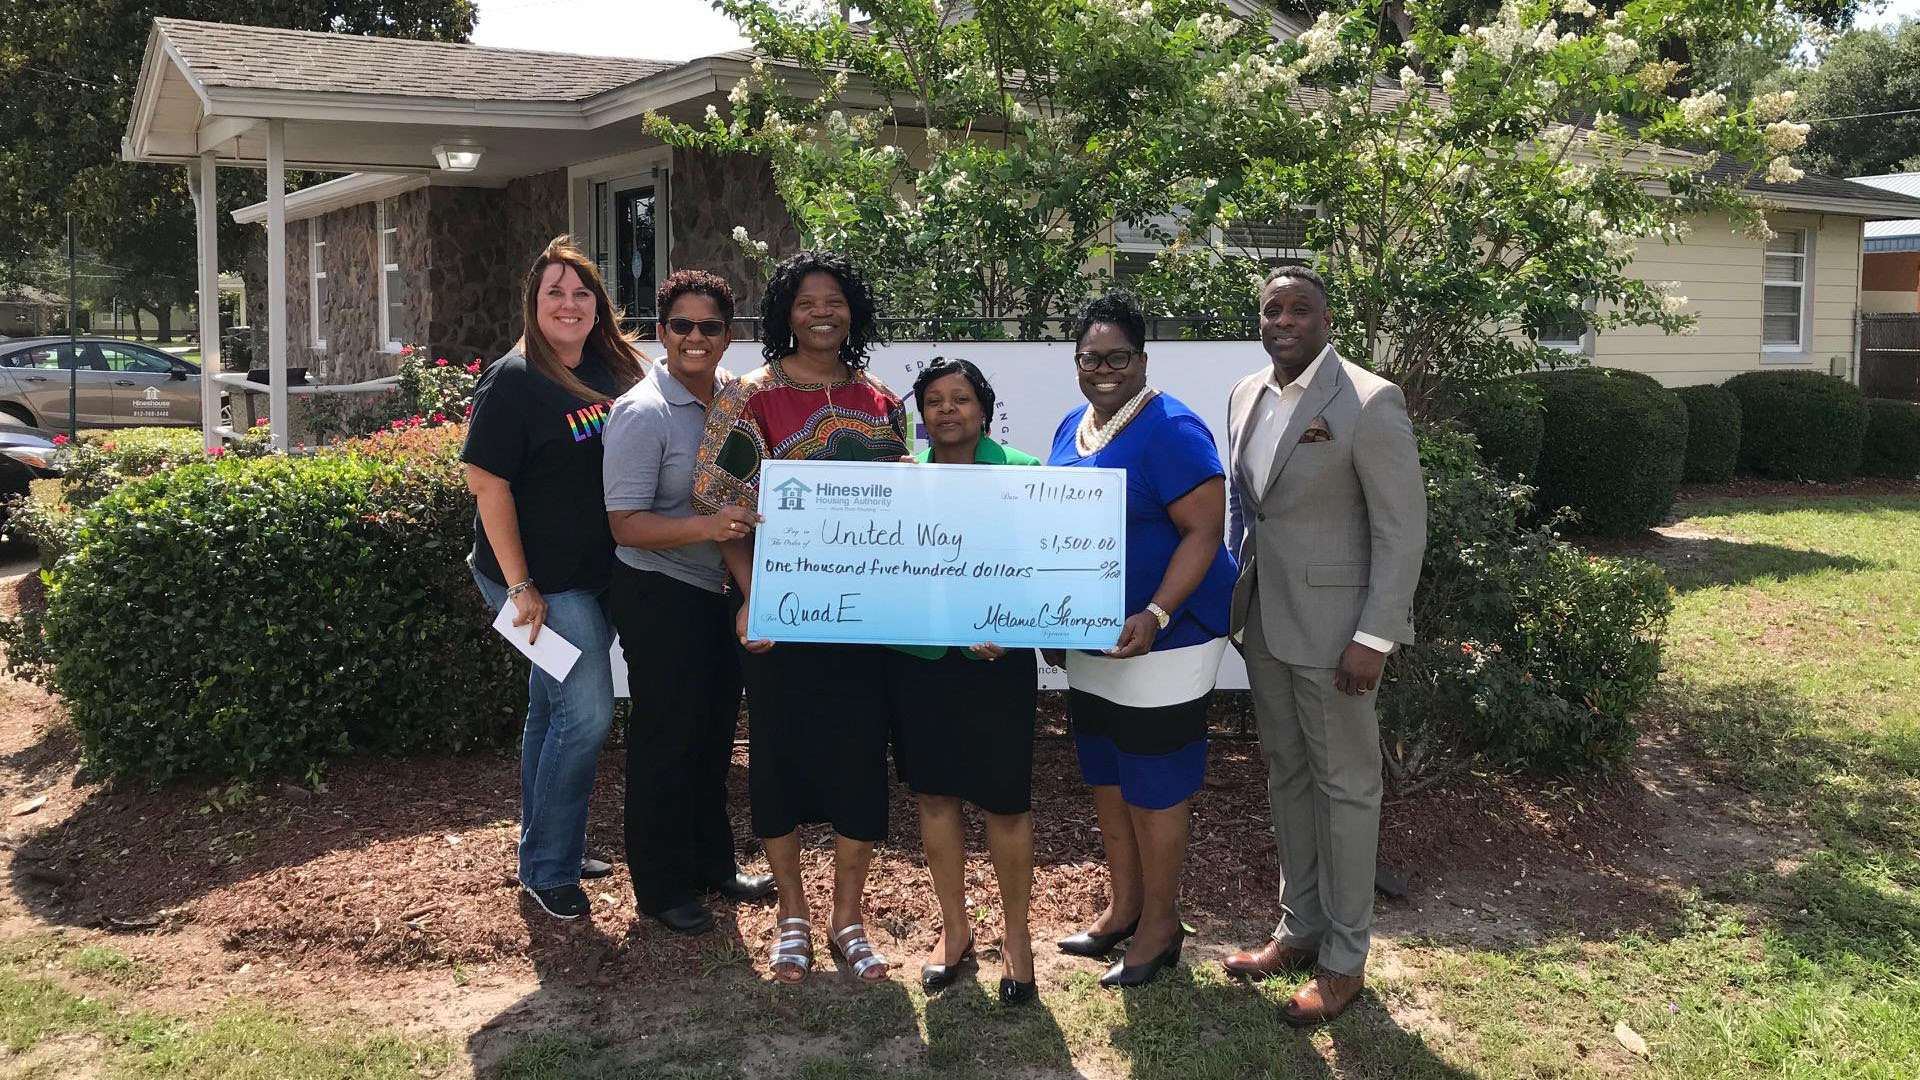 Housing Authority Donates $1,500 For Health Care Services - Hinesville Housing Authority - Hinesville, GA